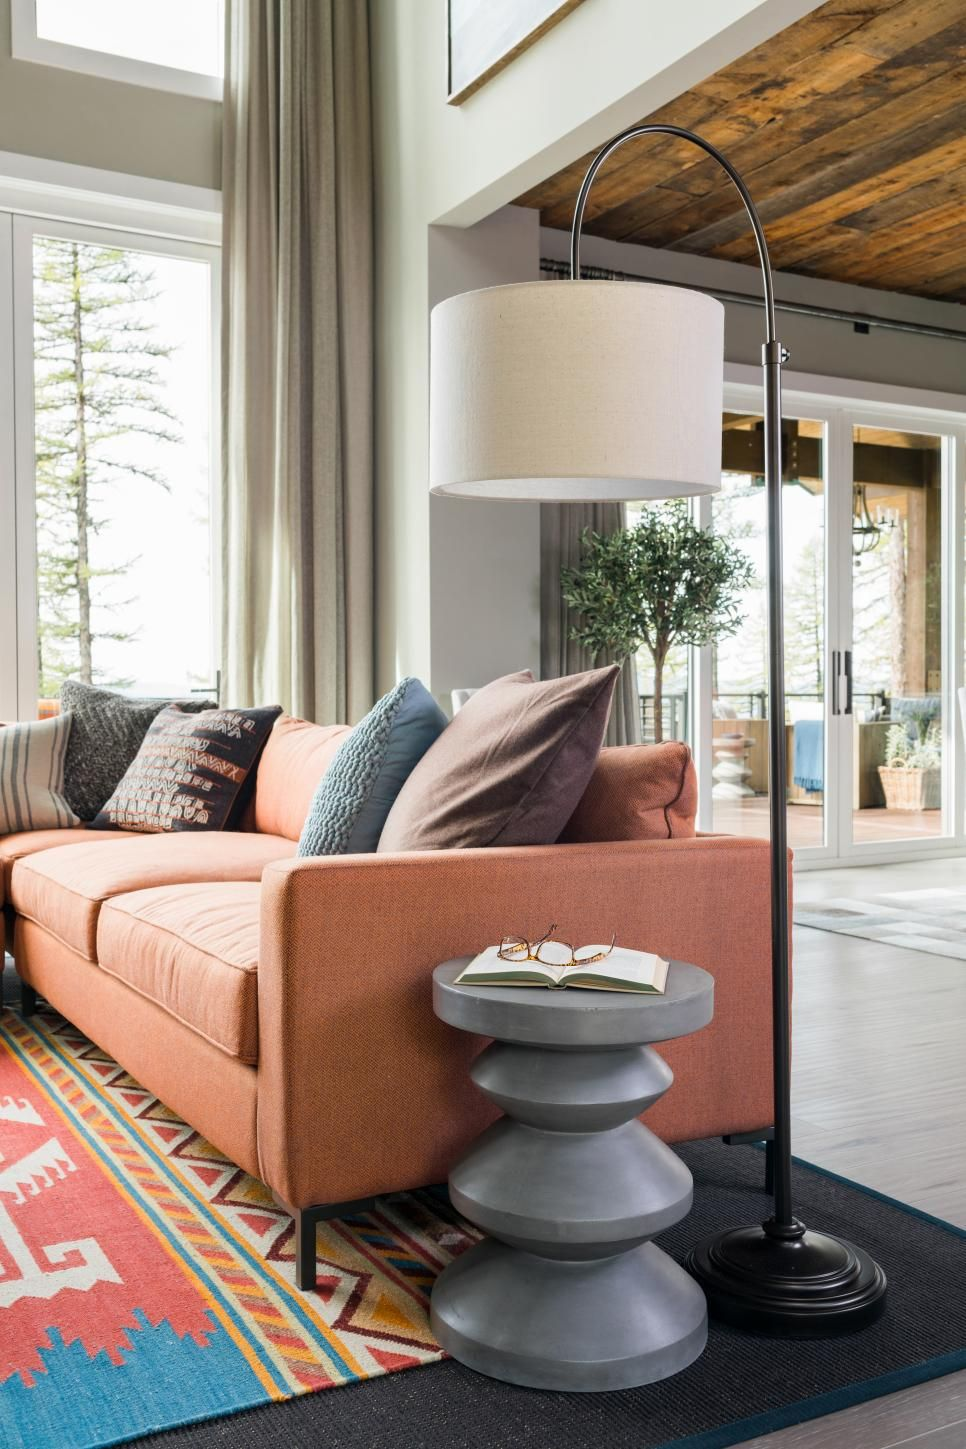 Hgtv Dream Home 2019 Great Room Pictures Hgtv Dream Home 2019 Hgtv Hgtv Dream Home Hgtv Dream Homes Great Rooms